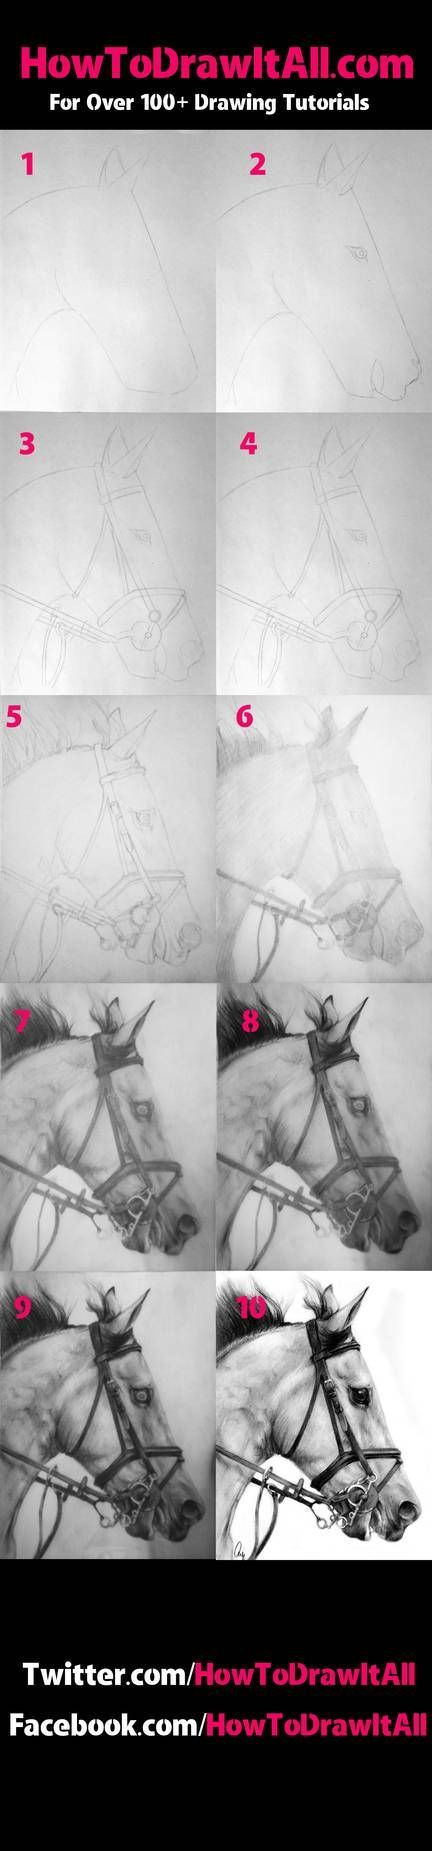 Horse Tutorial by HowToDrawItAll on DeviantArt